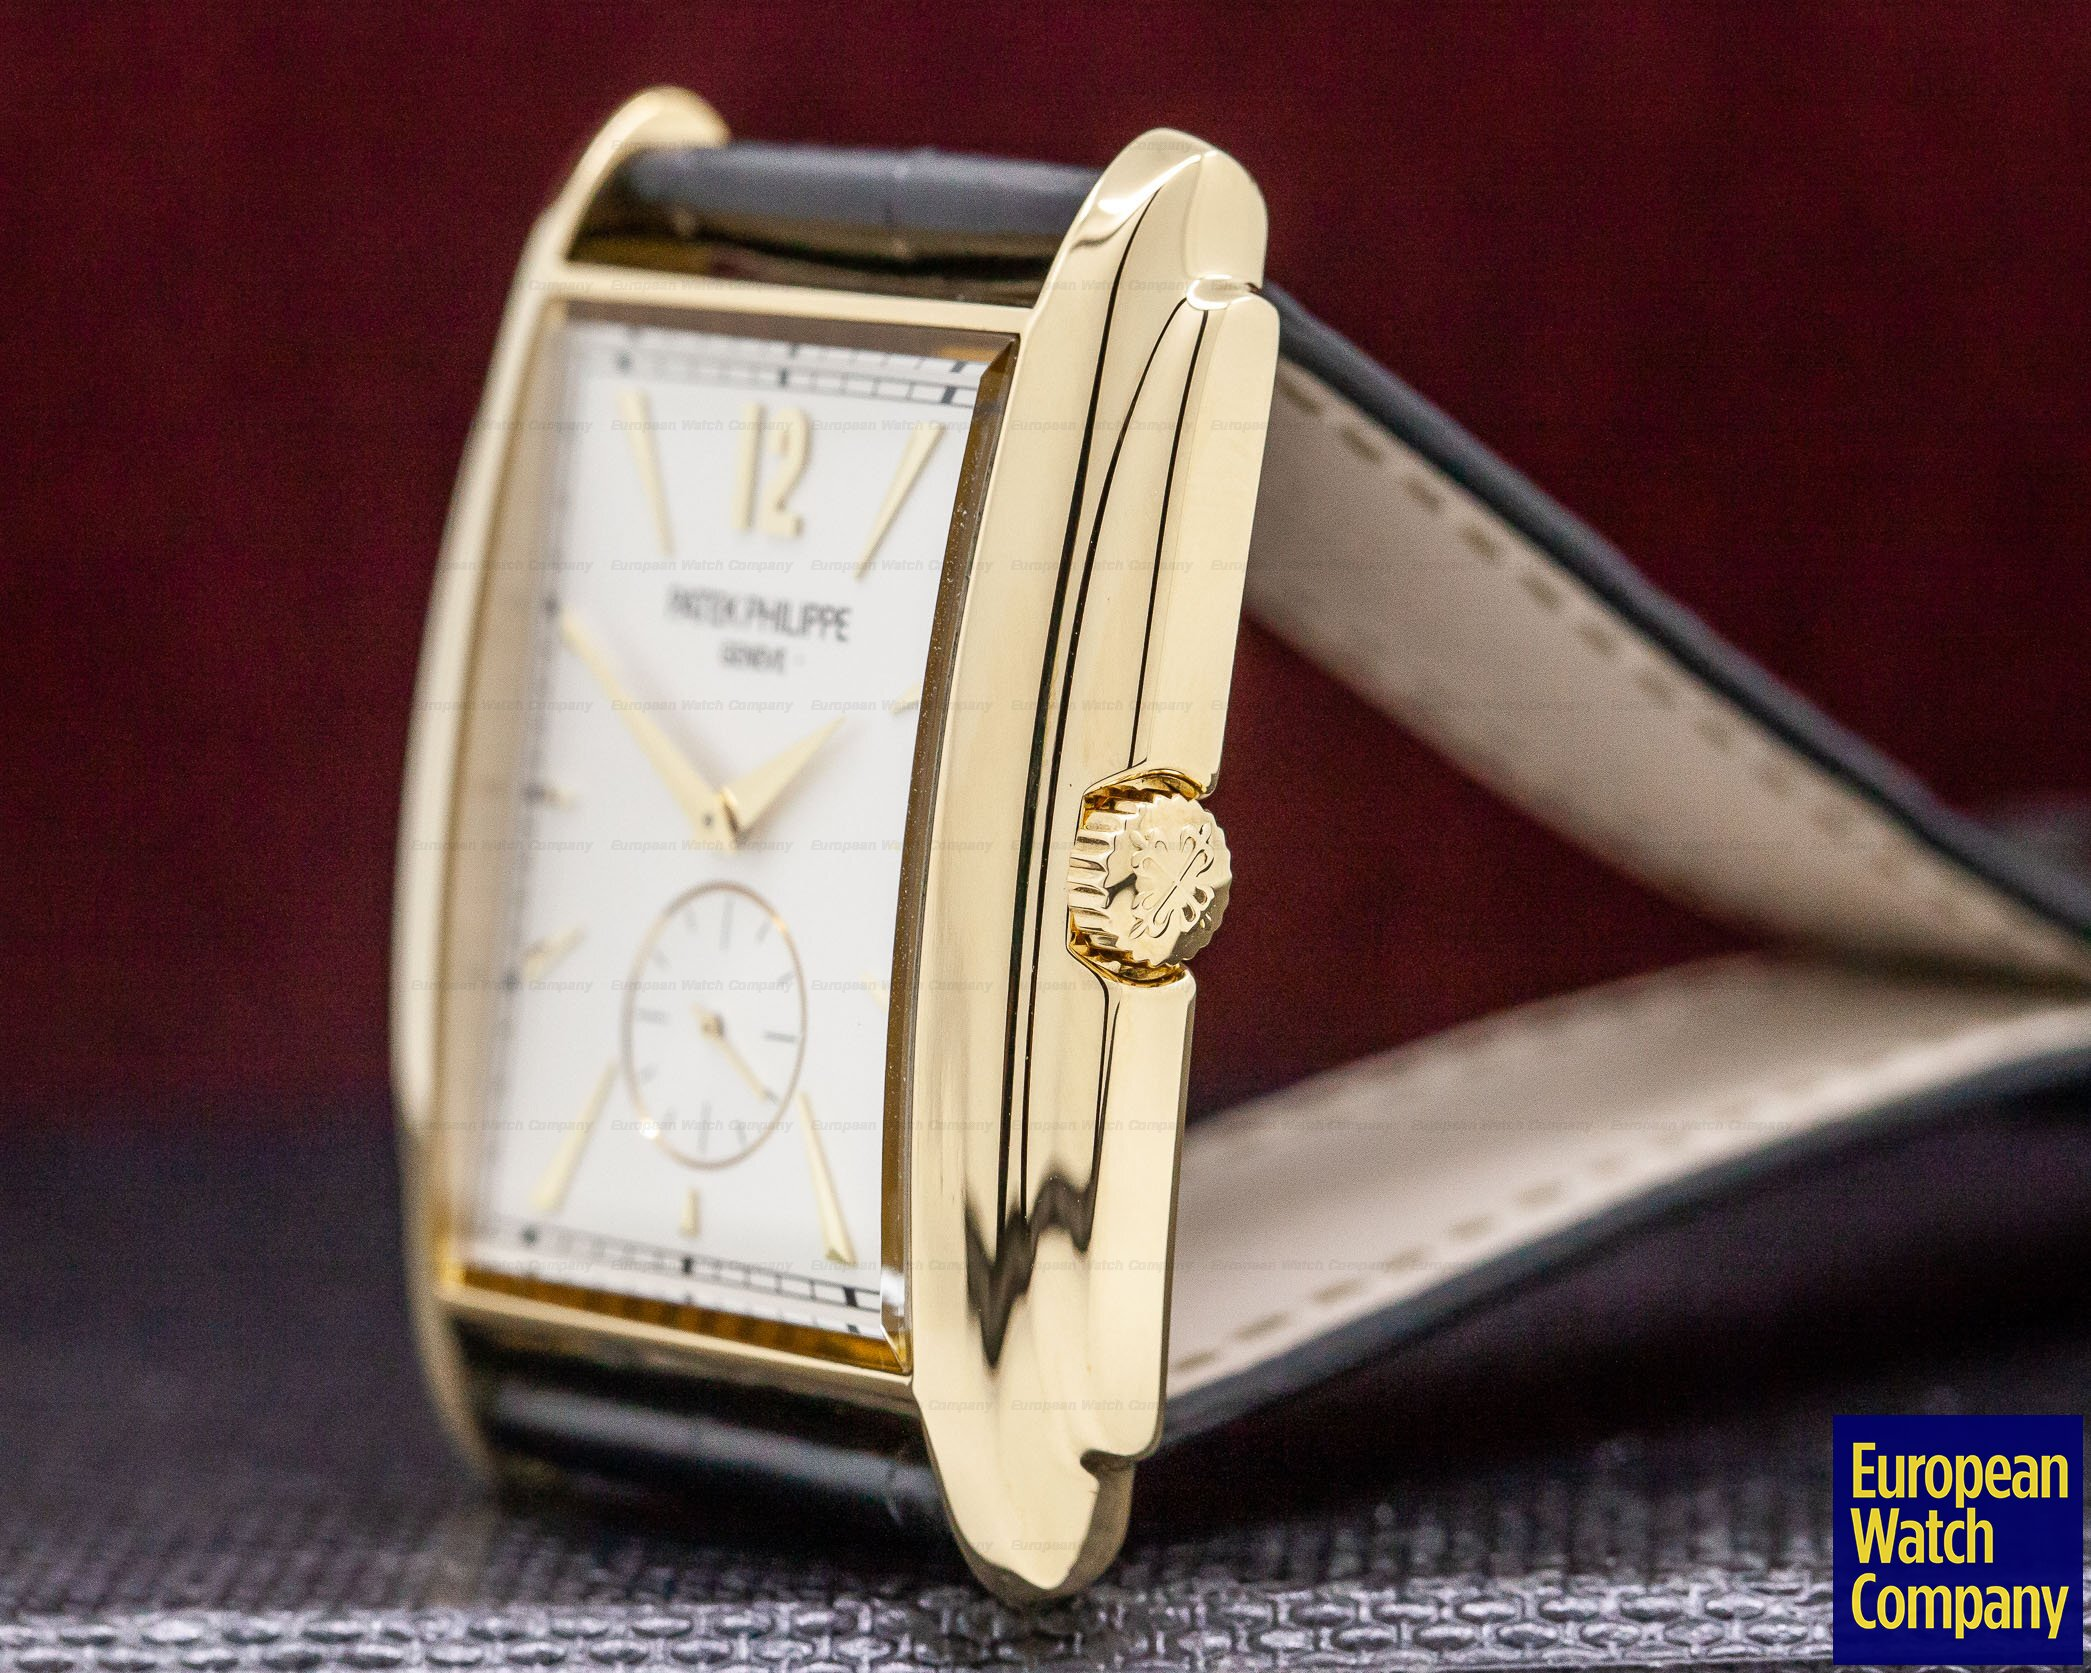 Patek Philippe 5124J-001 Gondolo 18K Yellow Gold Manual Wind